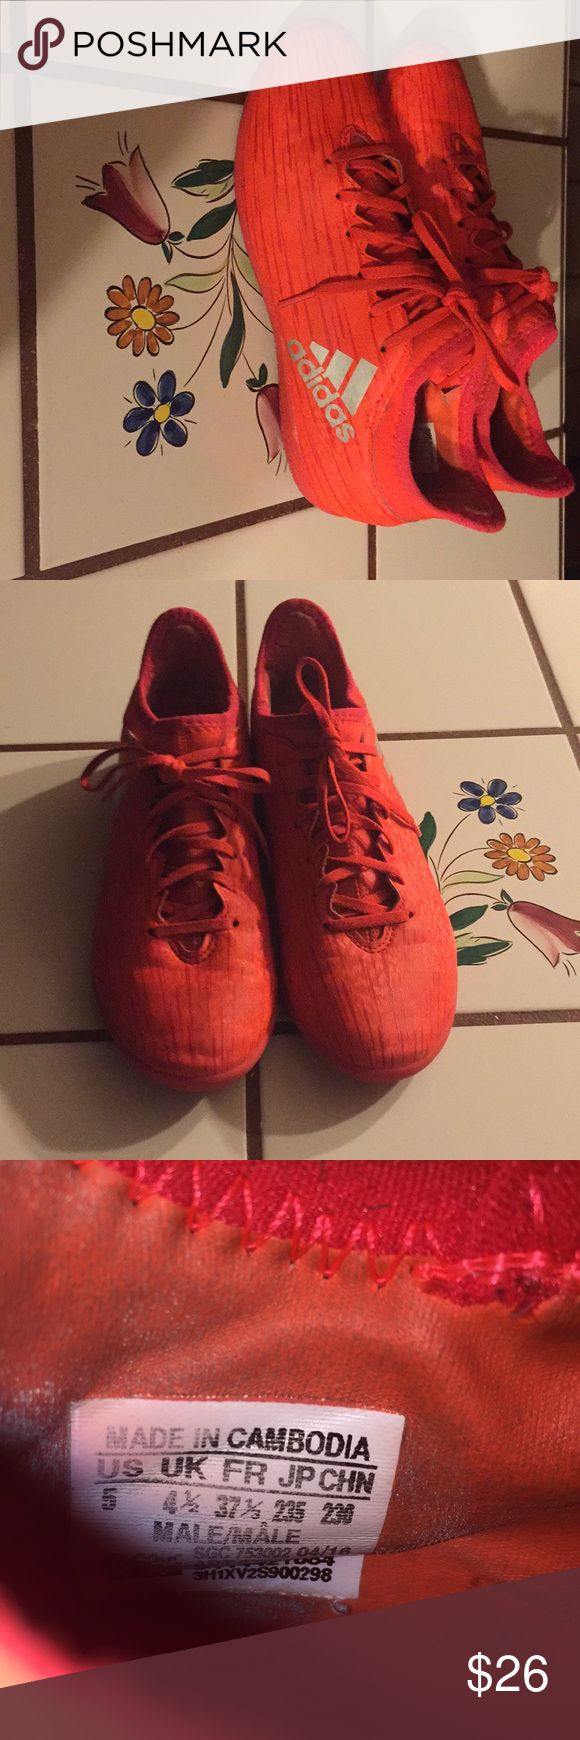 Orange adidas indoor soccer shoes Very cute orange adidas indoor soccer shoes. Size five. Very good condition. Let me know if you have any questions! Bundle for a private offer! adidas Shoes Athletic Shoes